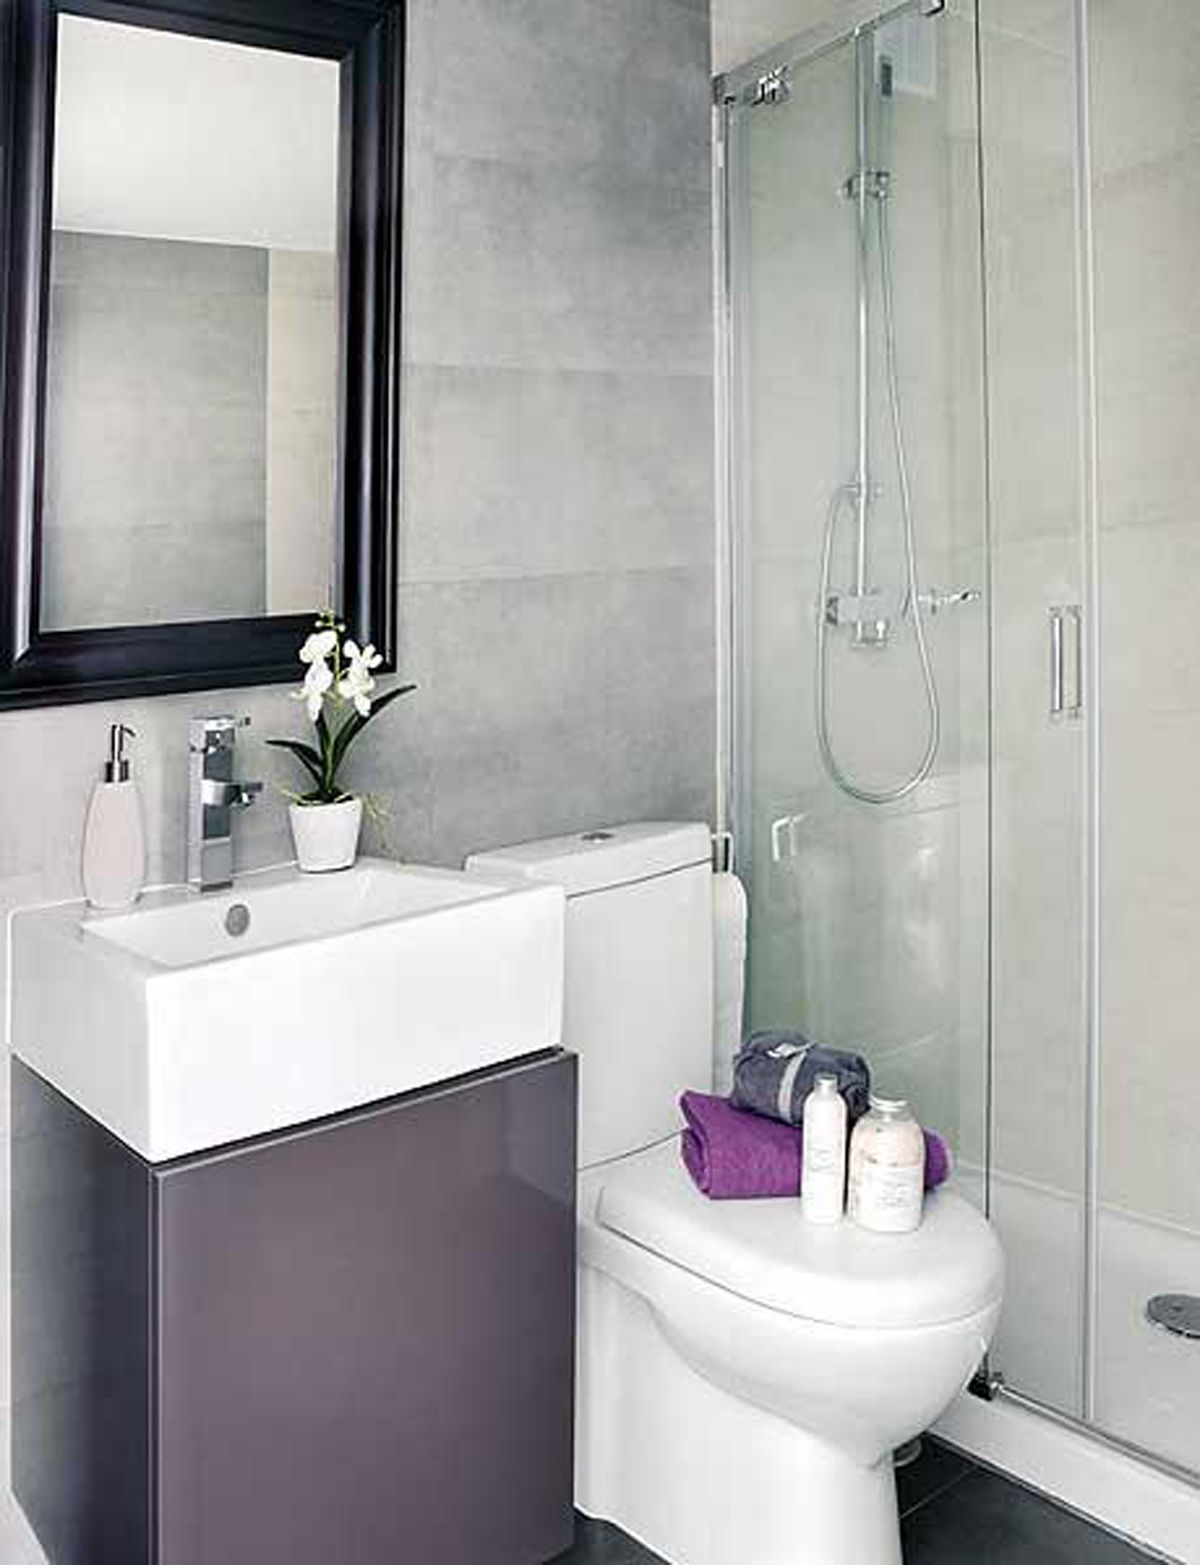 Intrinsic Interior Design Applied In Small Apartment Architecture - Small shower designs for small bathroom ideas